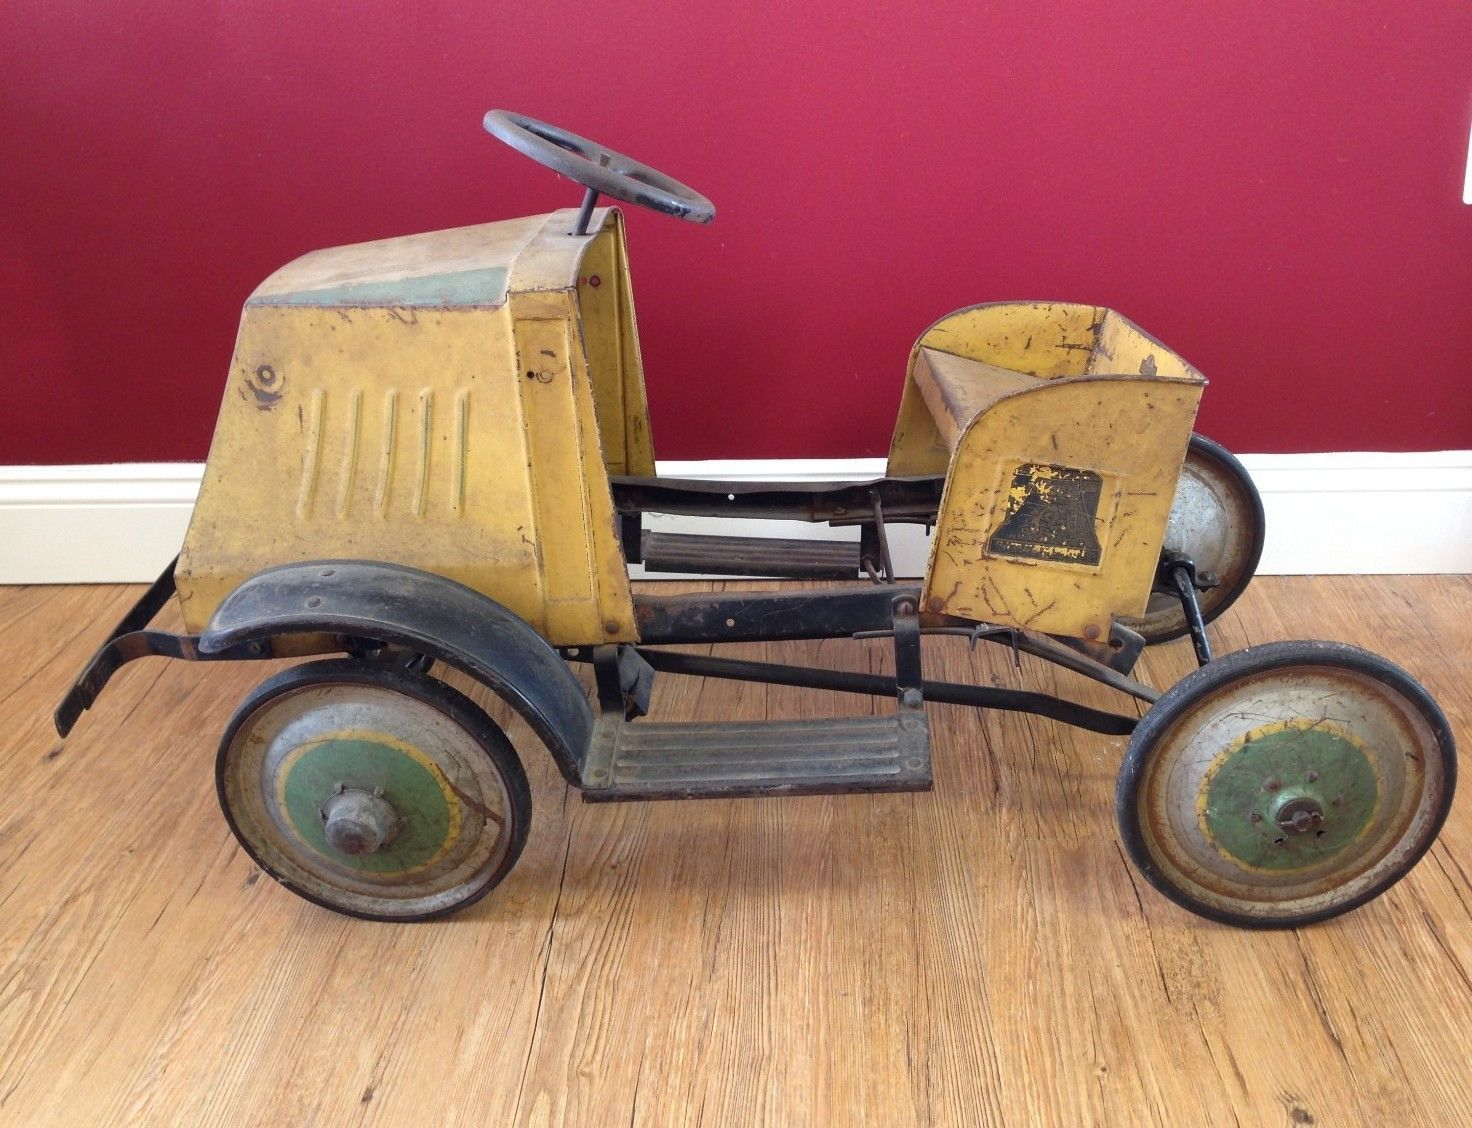 Collectible Antique Toys Toy Pedal Cars Vintage Pedal Cars Antique Toys